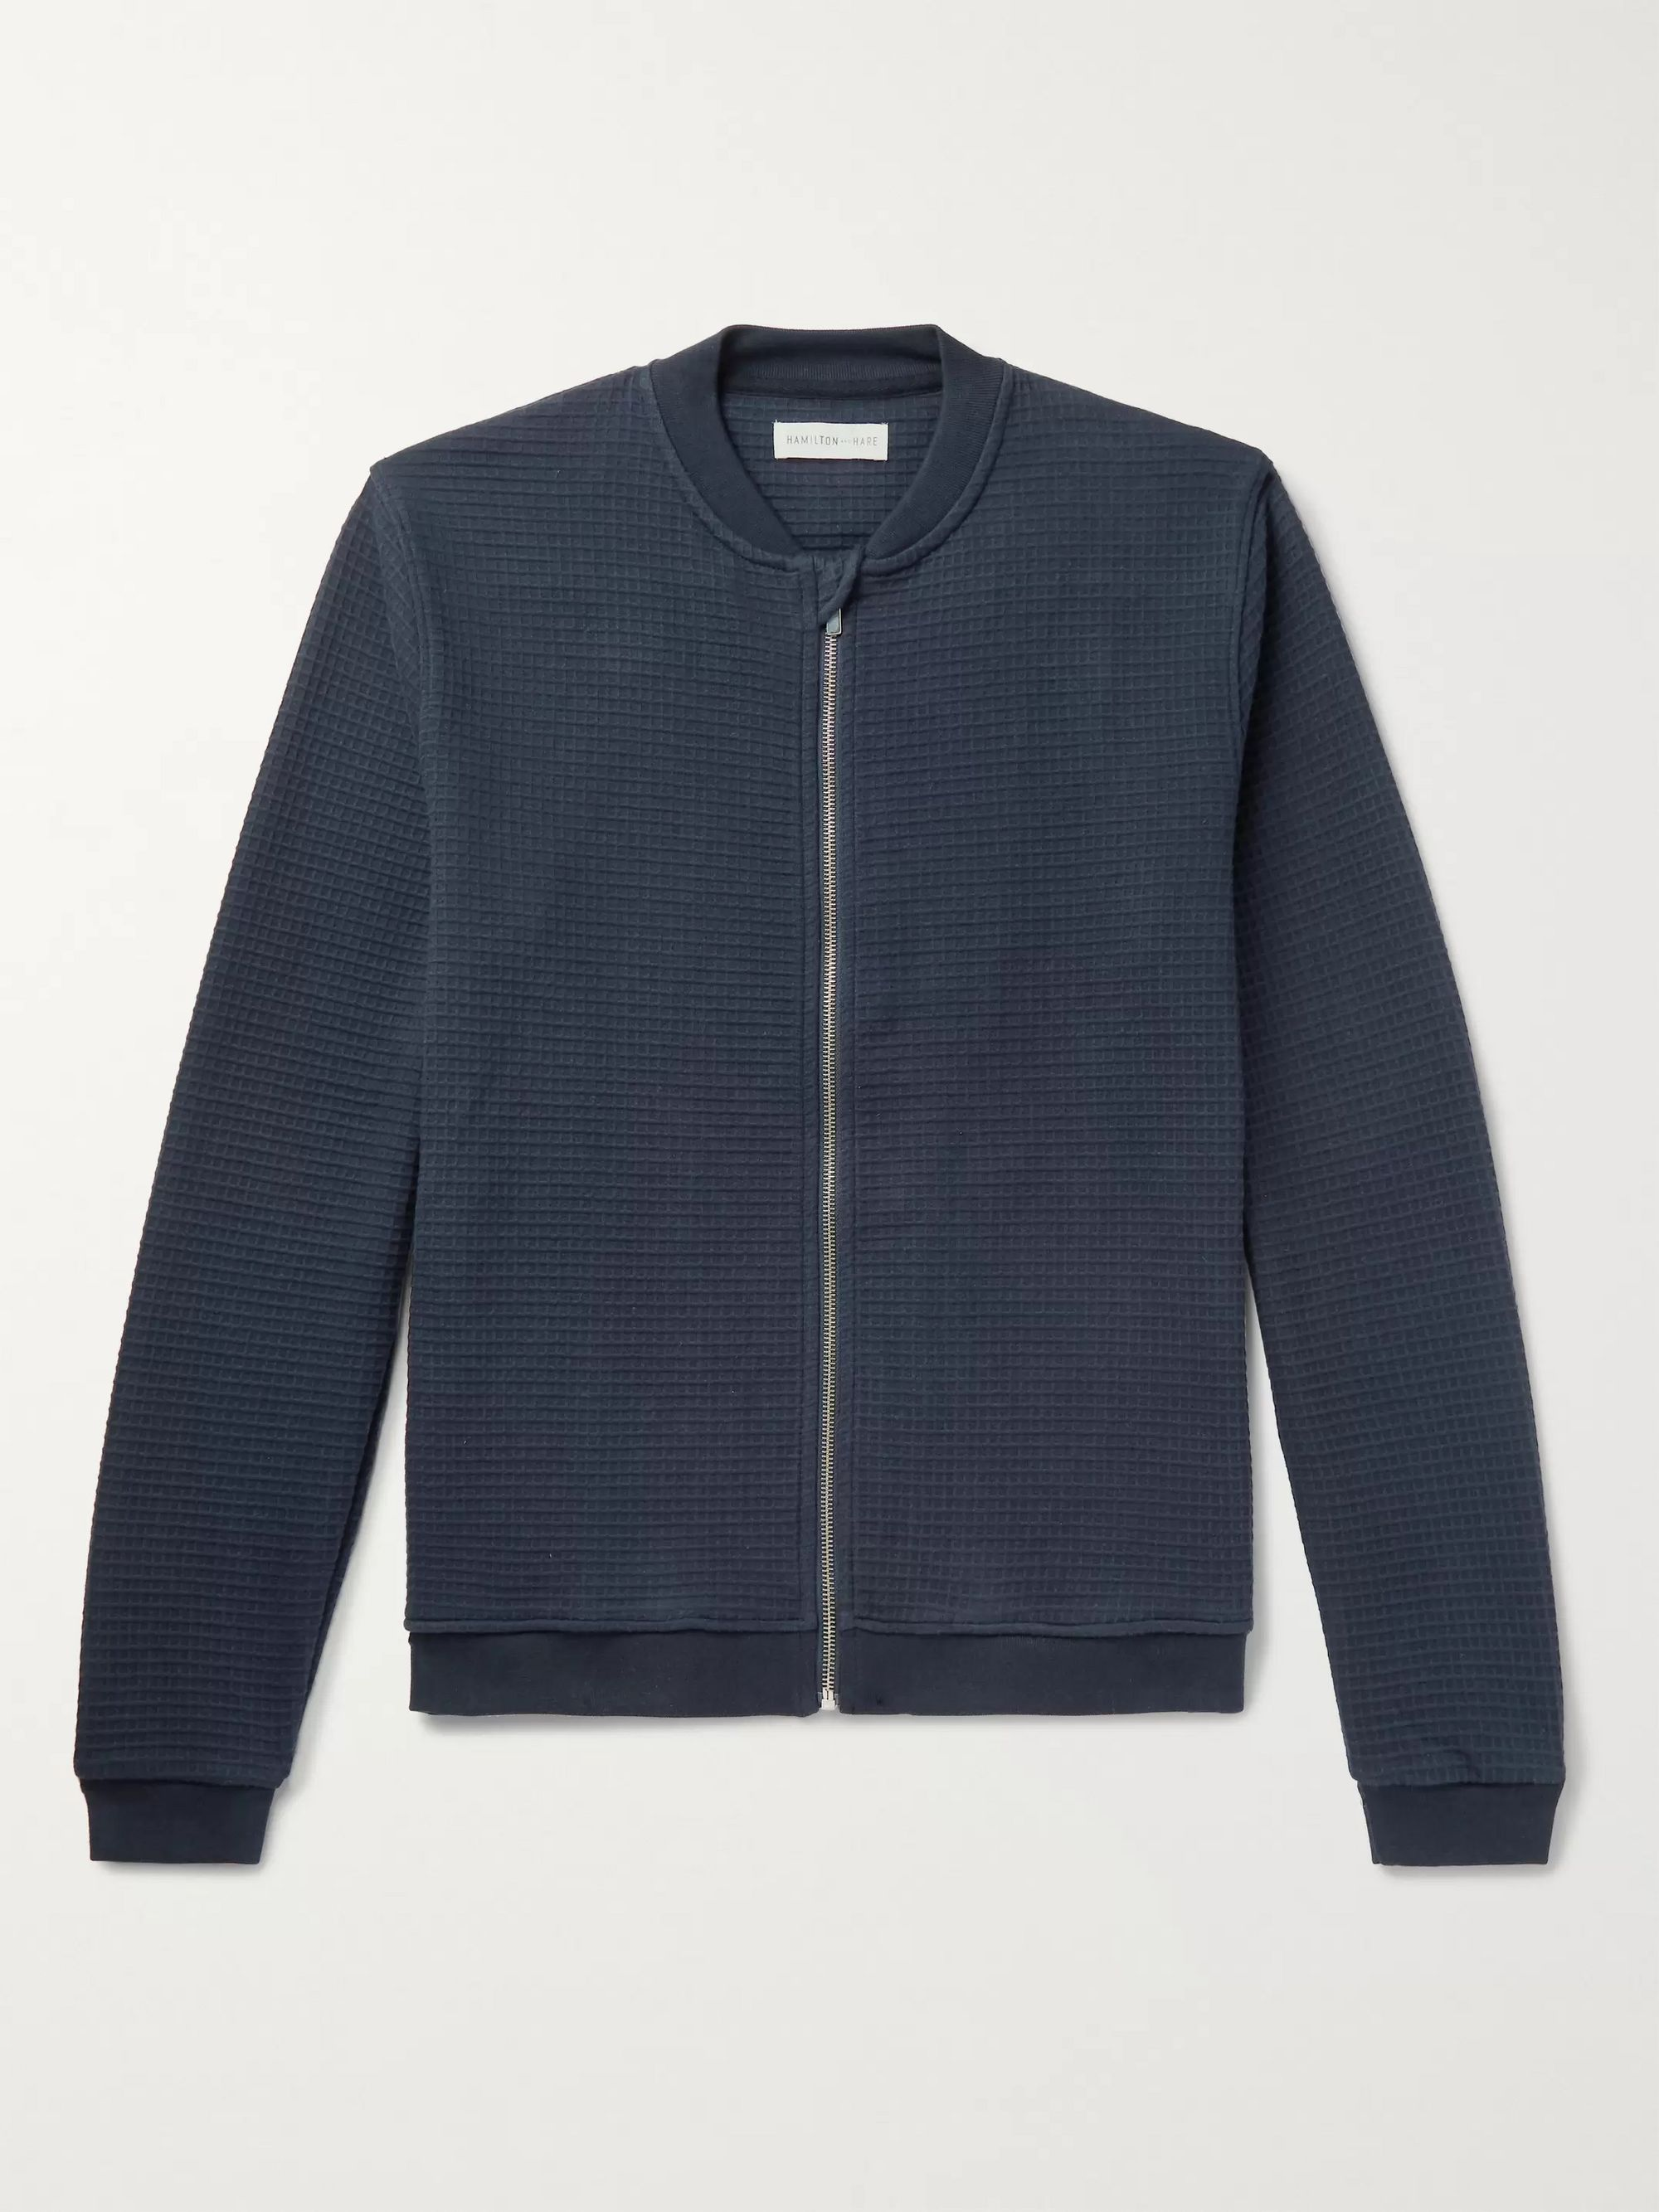 Hamilton and Hare Waffle-Knit Cotton Bomber Jacket